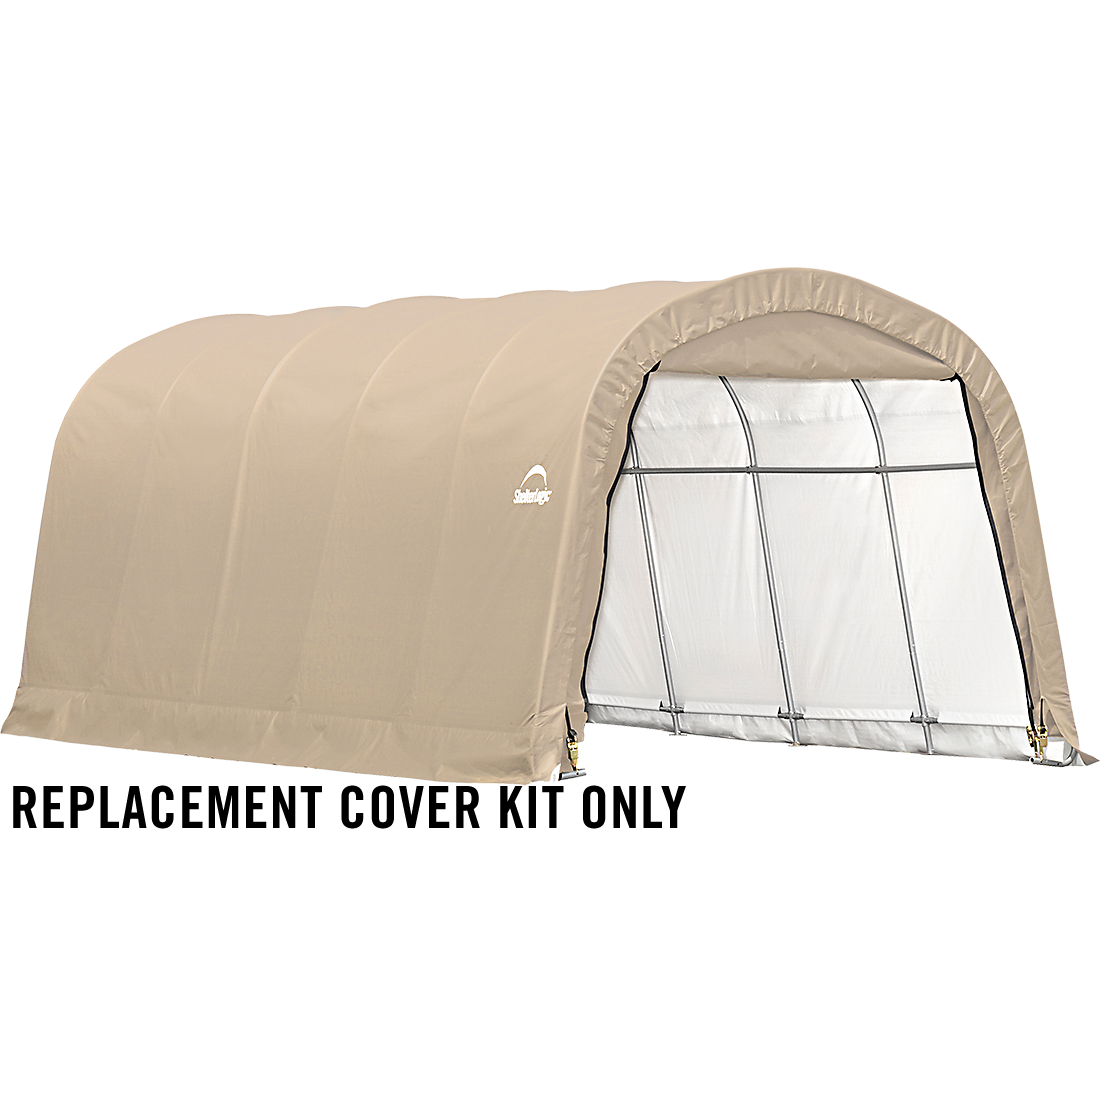 Shelterlogic Garage Replacement Covers : Replacement cover kit for the garage in a box roundtop